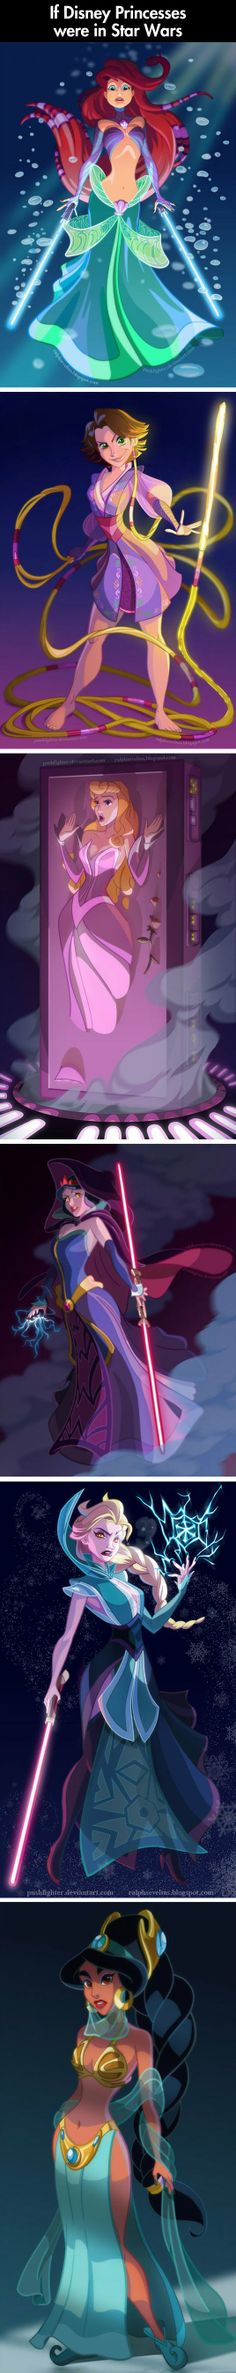 If Disney Princesses were in Star Wars. Two of the best things put in one.